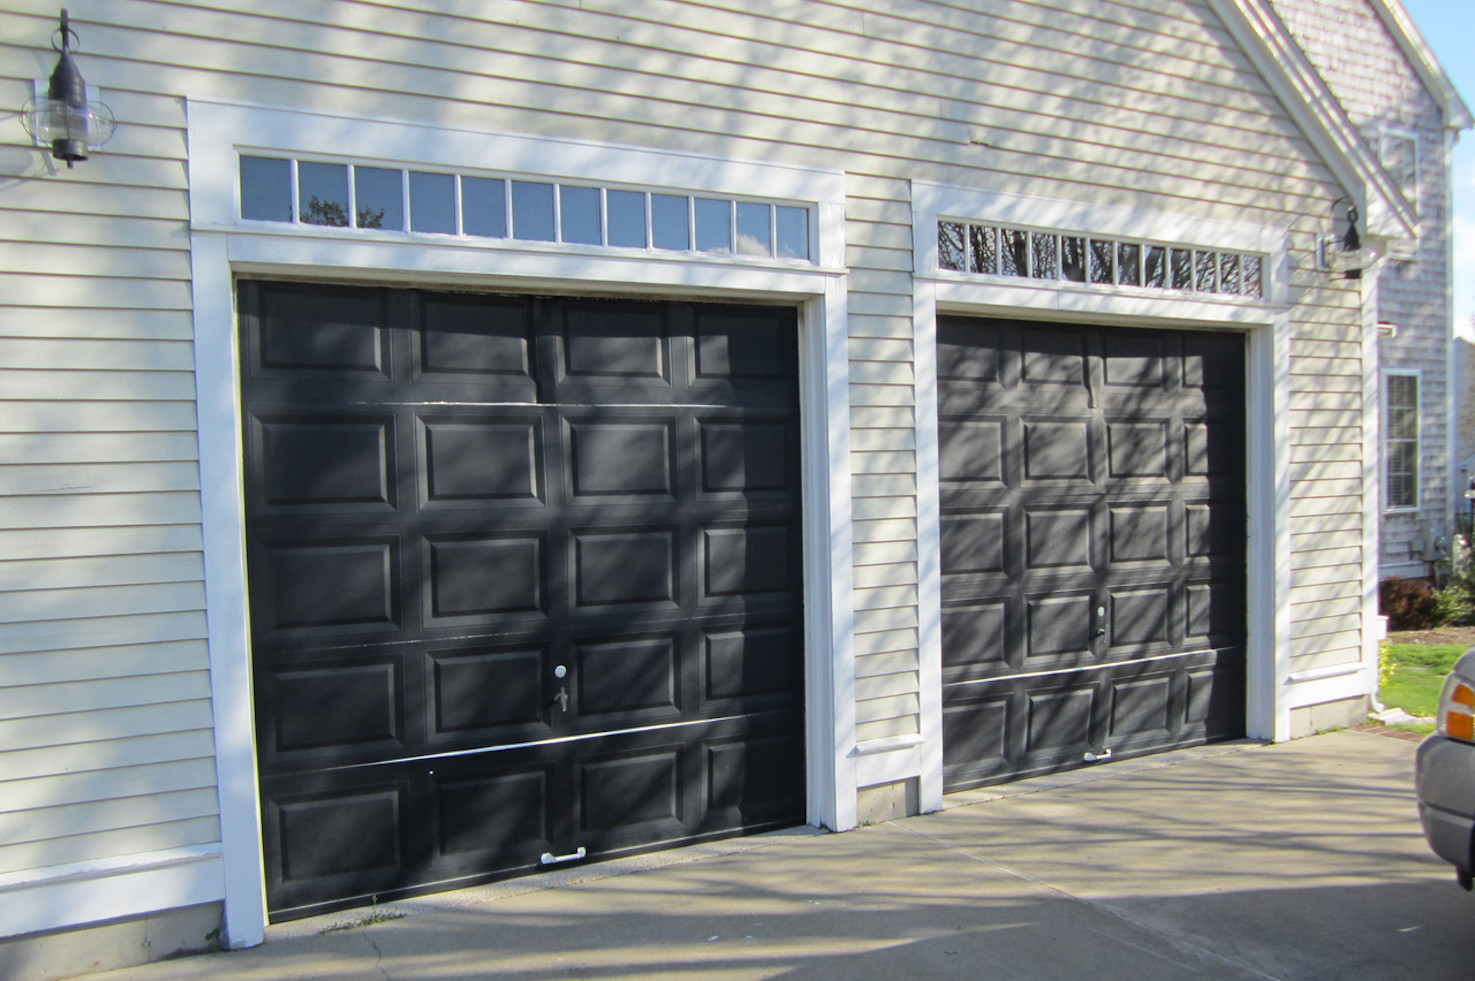 Quality garage door panel repair and replacement 24 garage door quality garage door repair thornhill offers 247 garage door panel repair and replacement services to the residents of thornhill and the surrounding areas rubansaba